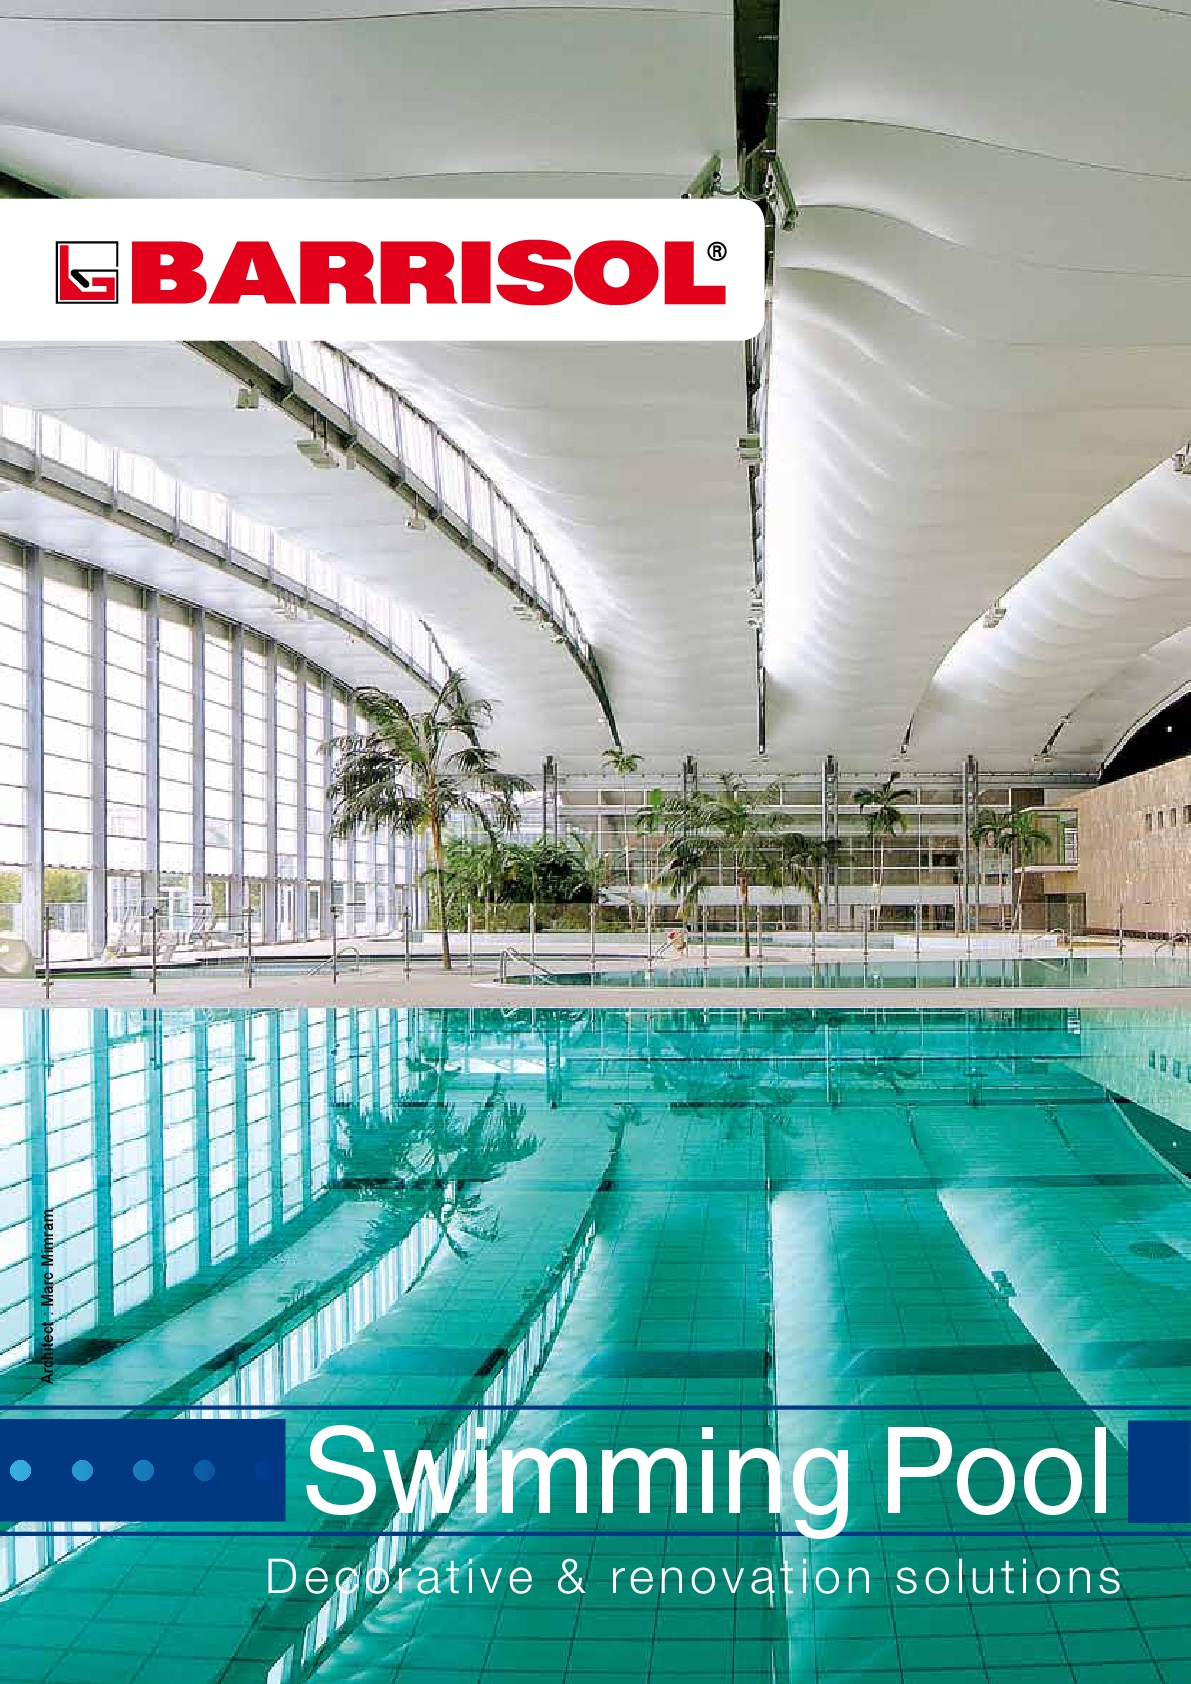 BARRISOL Swimming Pool